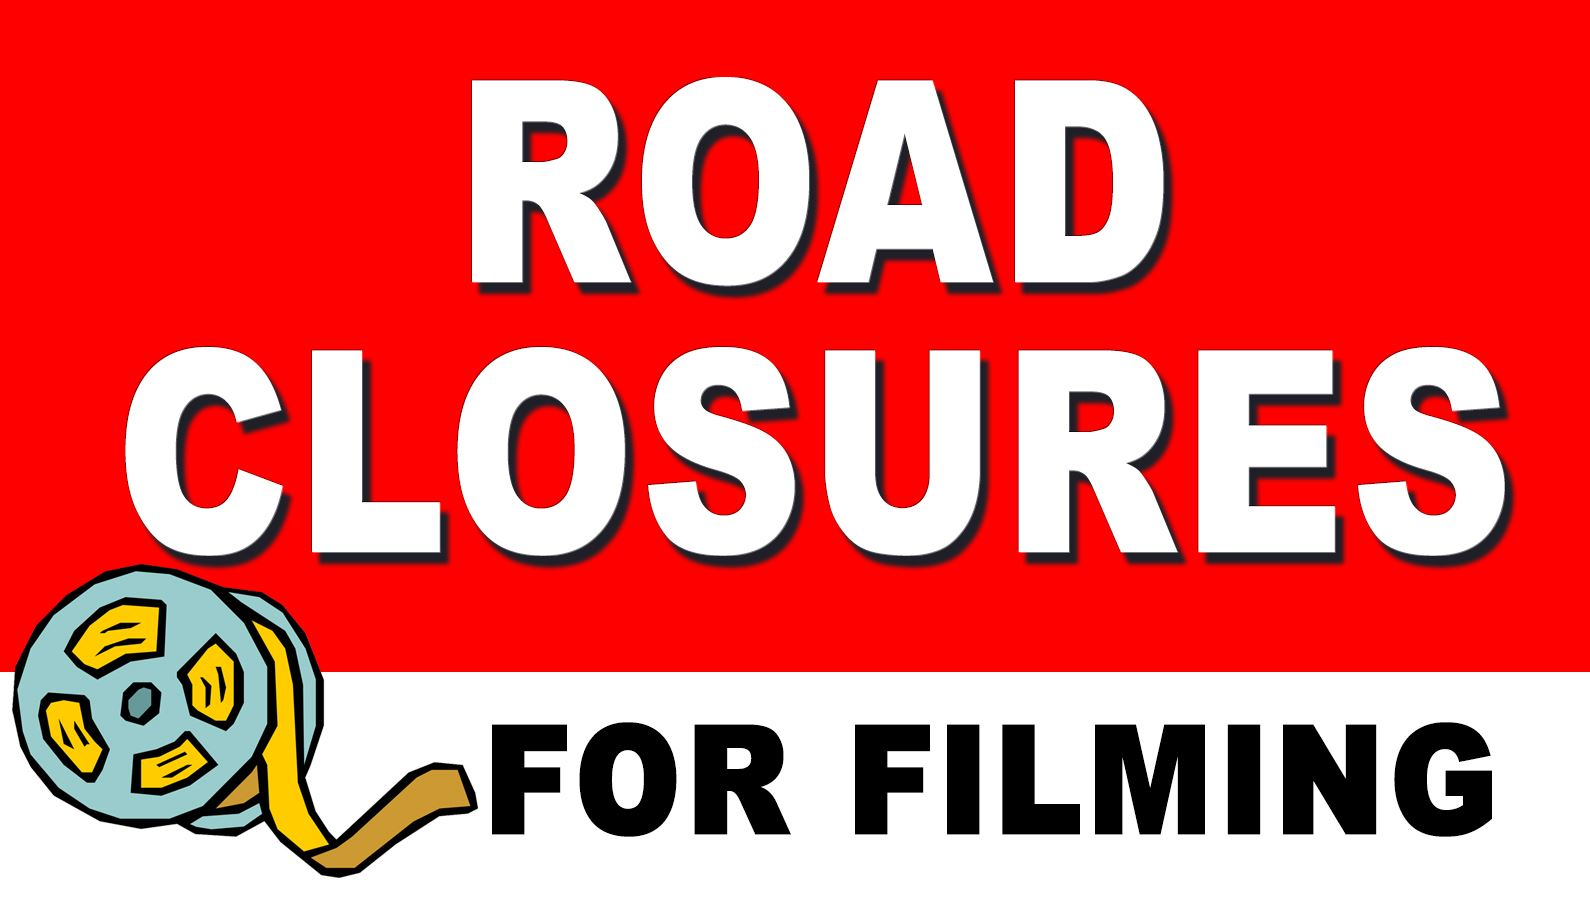 Road Closure for Filming Web Highlight i